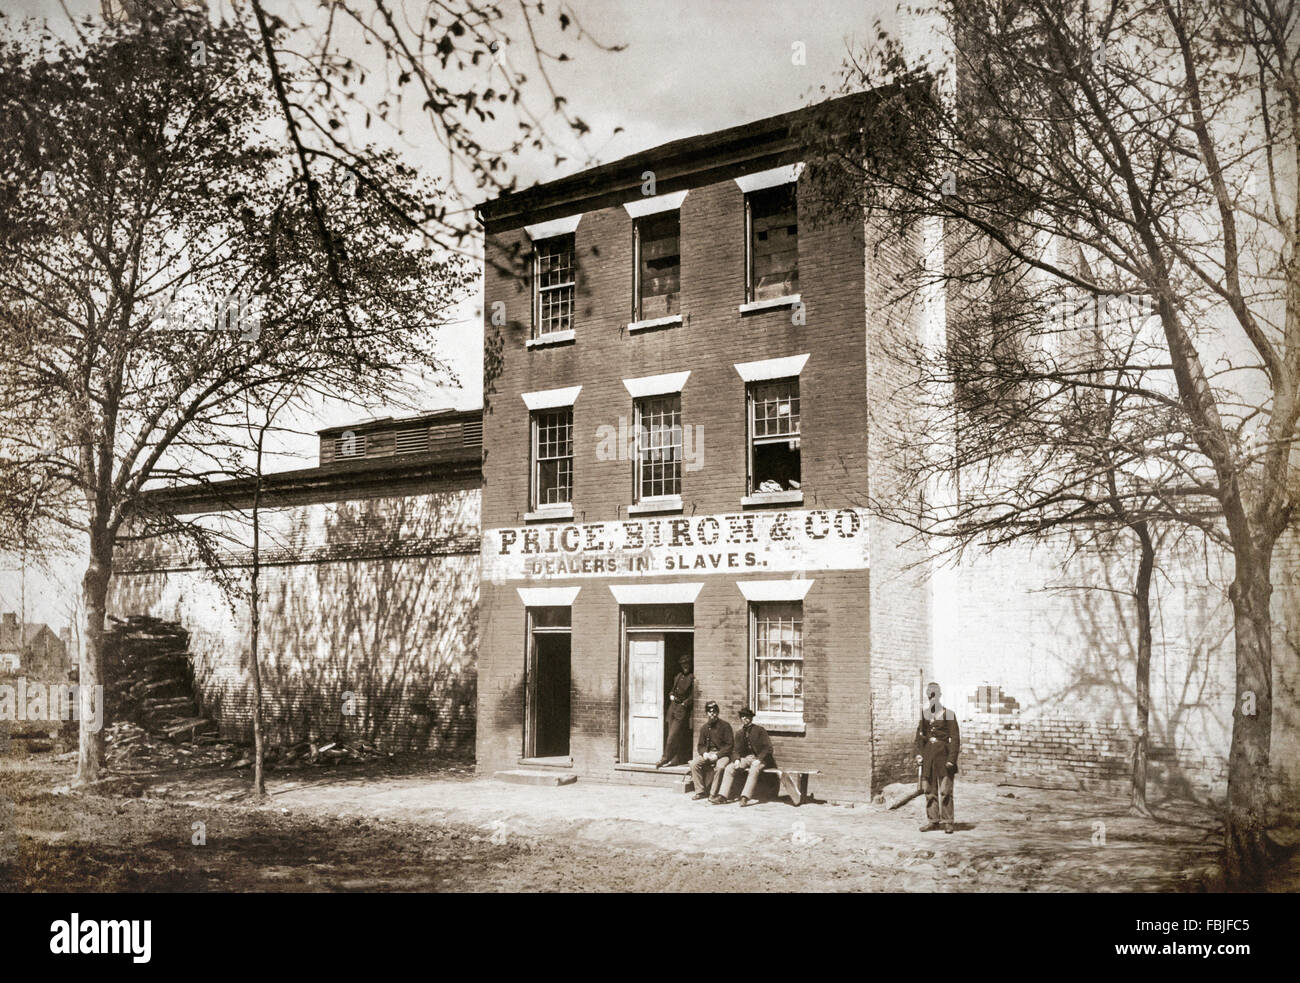 Price Birch & Company (previously Franklin and Armfield), the largest slave dealers in the antebellum south - Stock Image